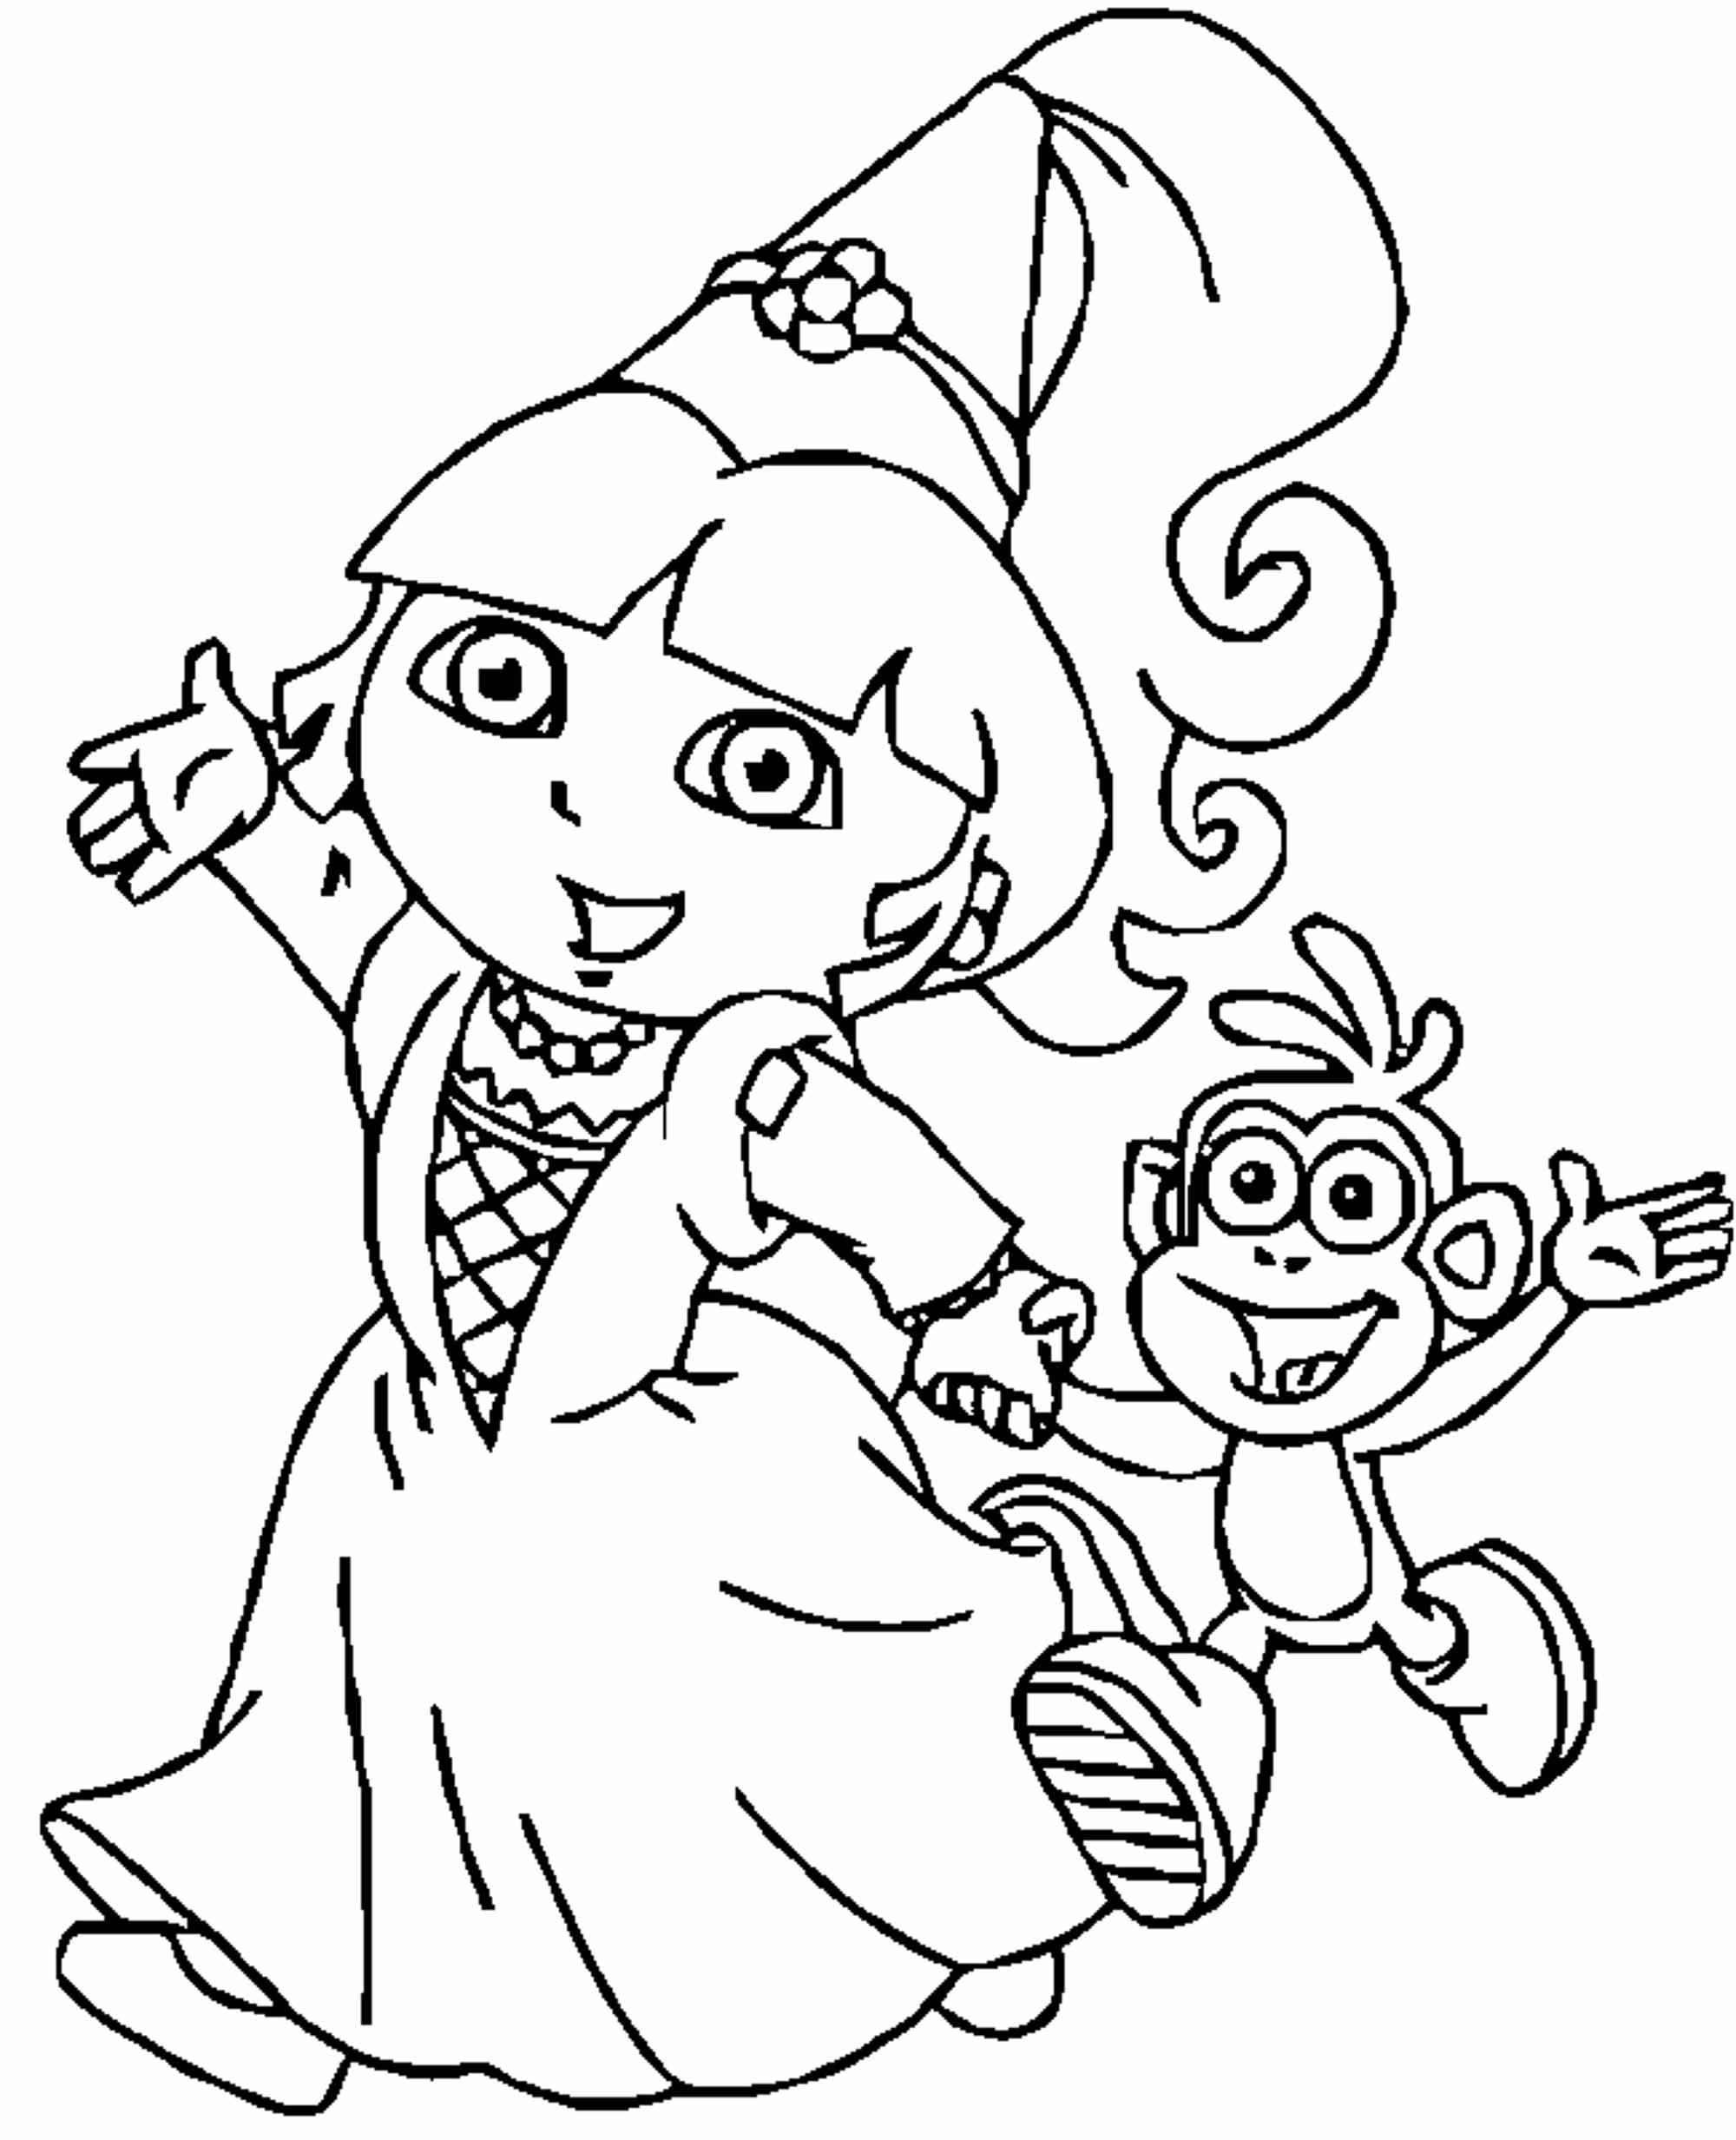 dora coloring pictures dora coloring page free printable coloring pages pictures coloring dora